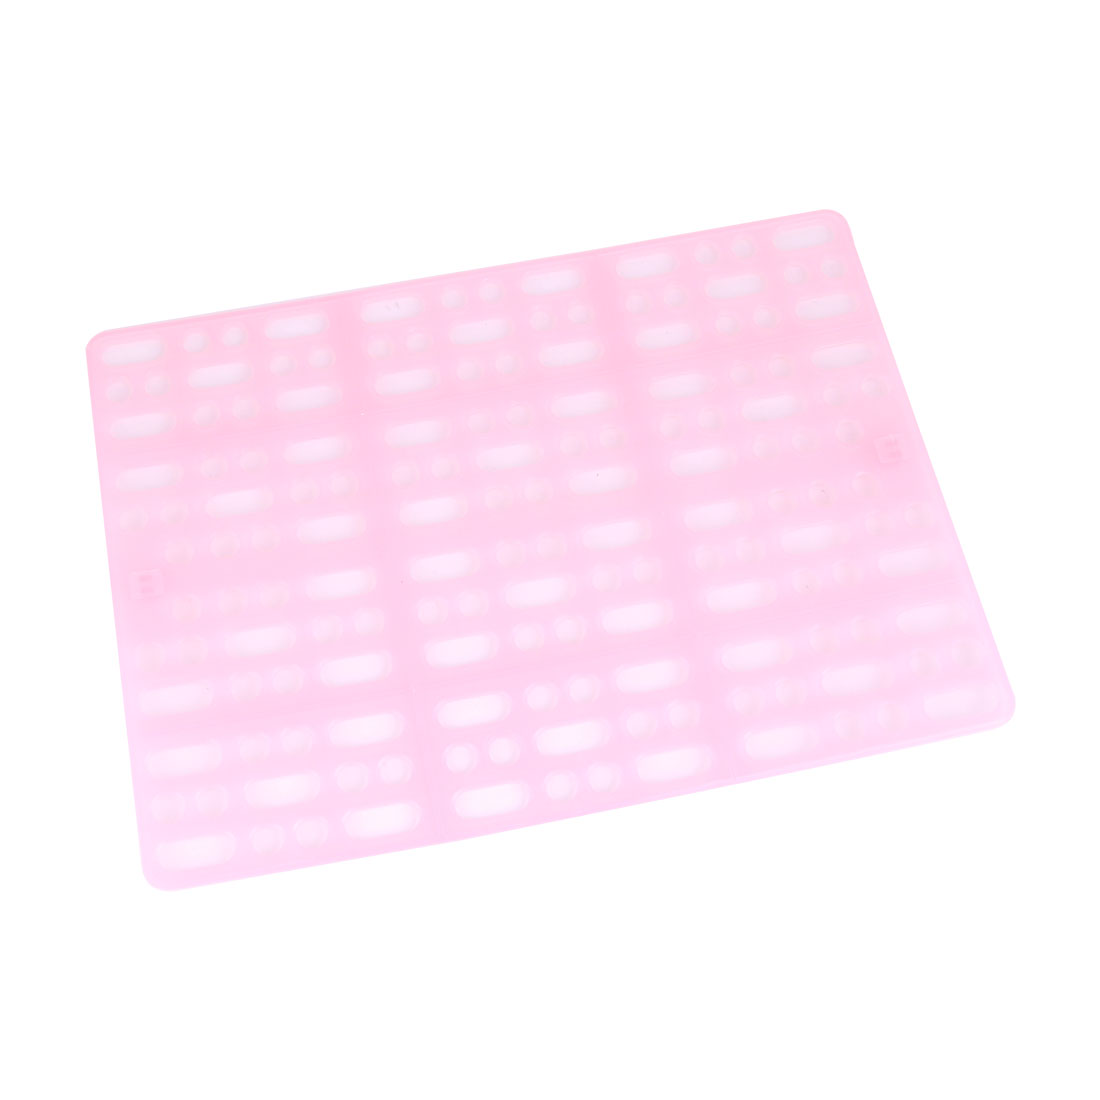 Hole Design Hamster Rabbit Pet Cage Plastic Feet Protecting Mat Pad Holder Pink by